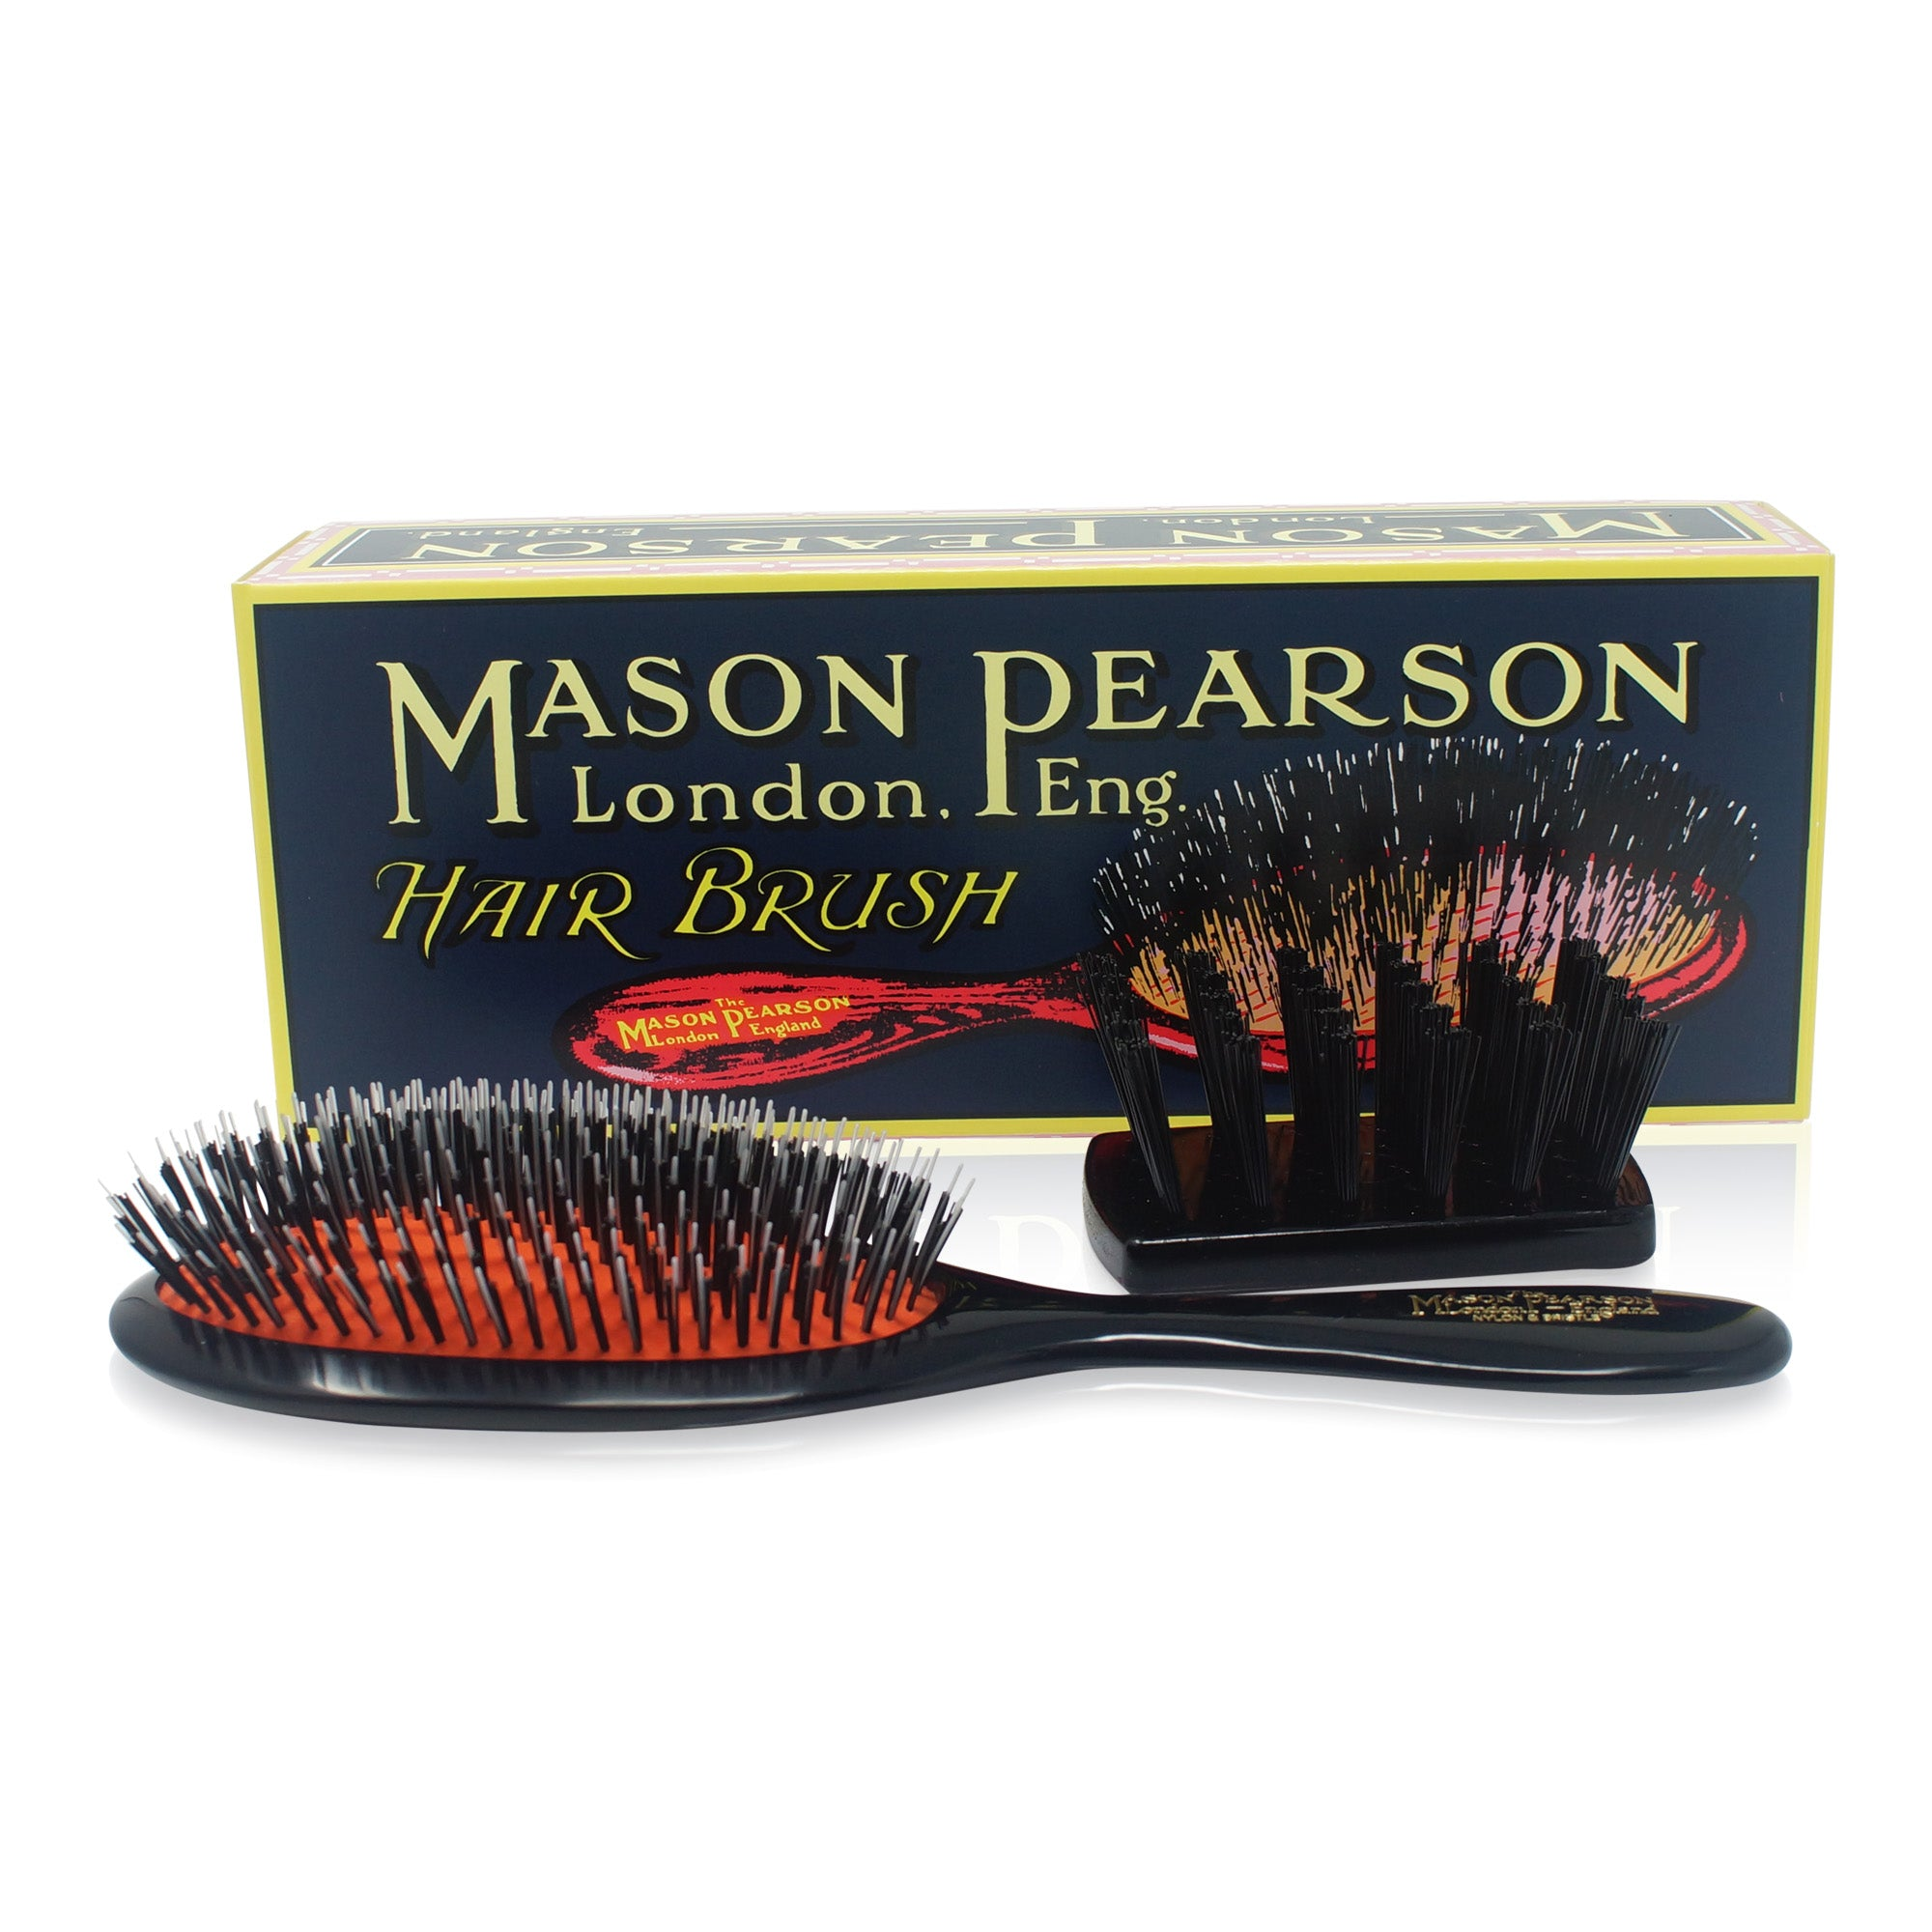 MASON PEARSON BRUSHES ~ BRISTLE & NYLON ~ HANDY BRISTLE & NYLON